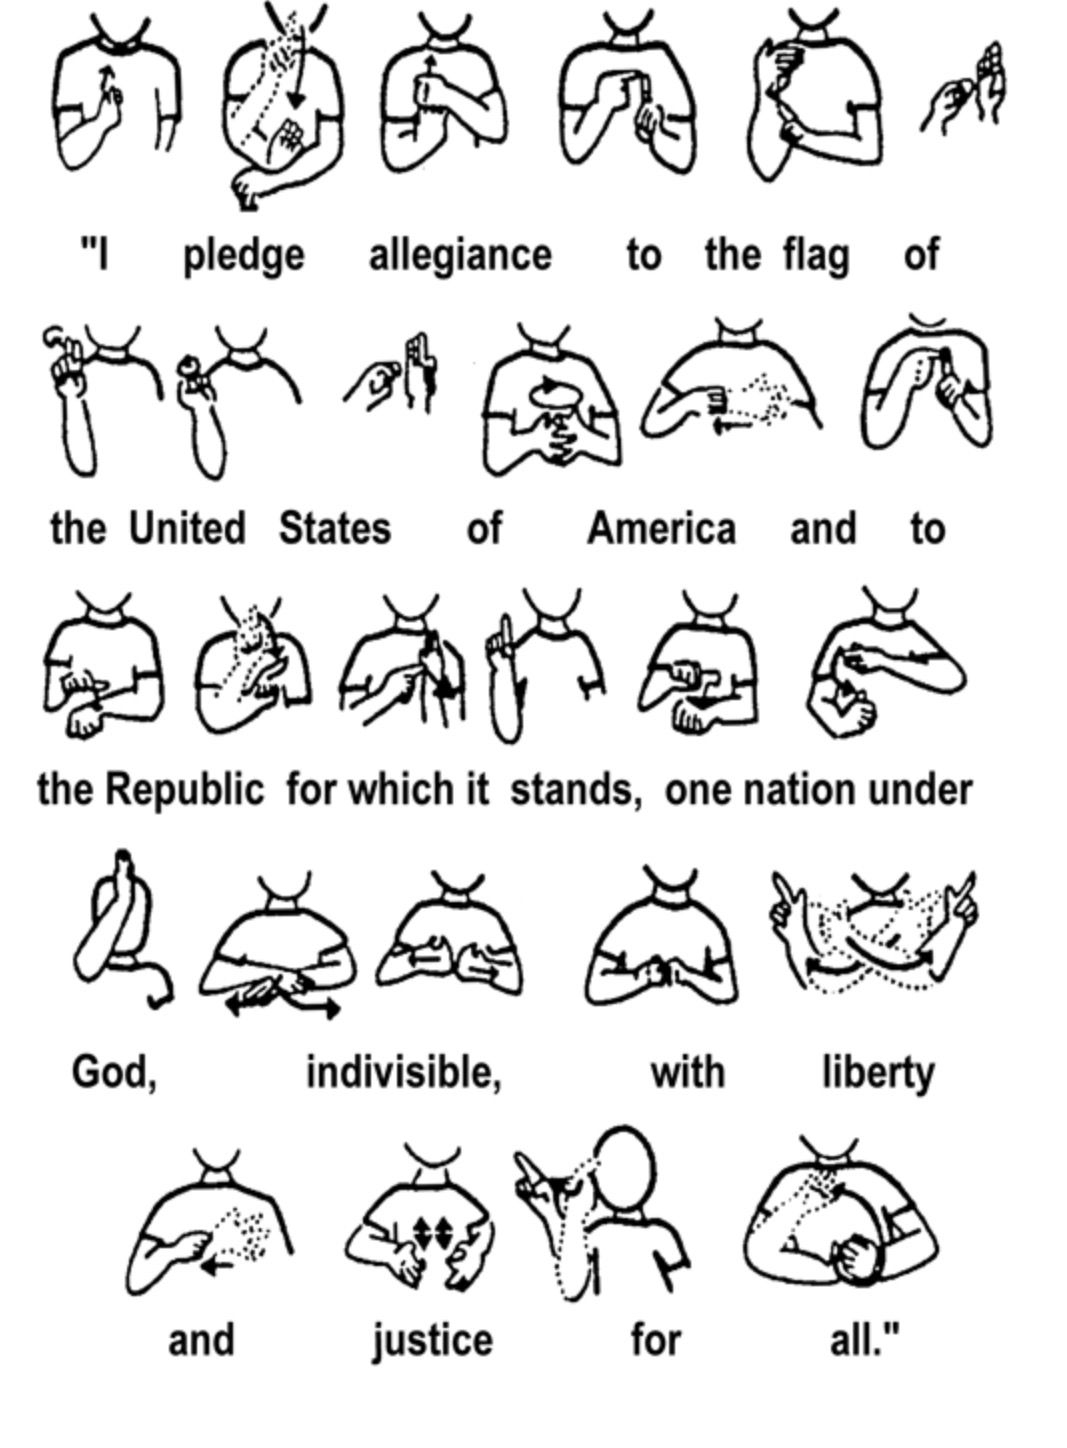 Asl The Pledge Of Allegiance Sign Language Word Phrase What Doe Mean To Me Republic In Justice